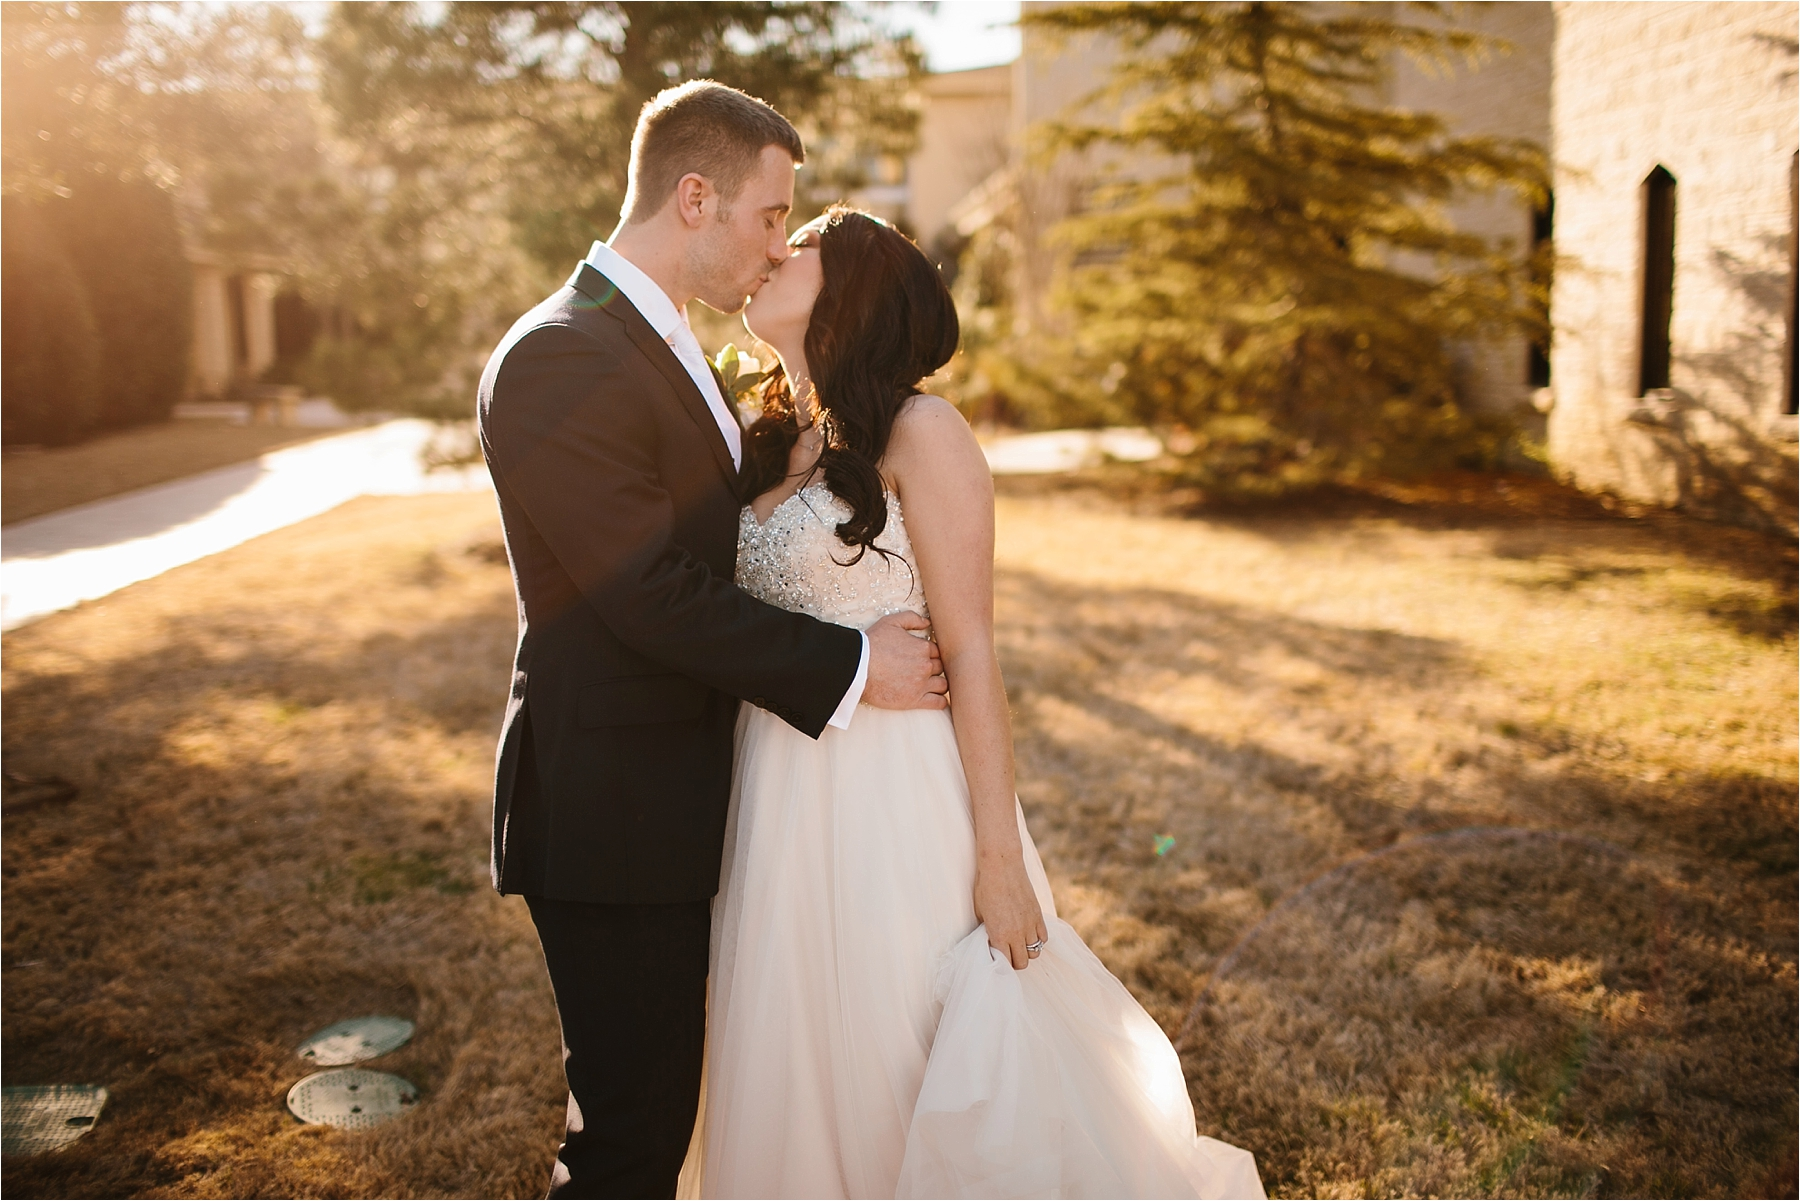 Chrissy + Zach __ The Windsor at Hebron Park Wedding by North Texas Wedding Photographer _ Rachel Meagan Photography __051